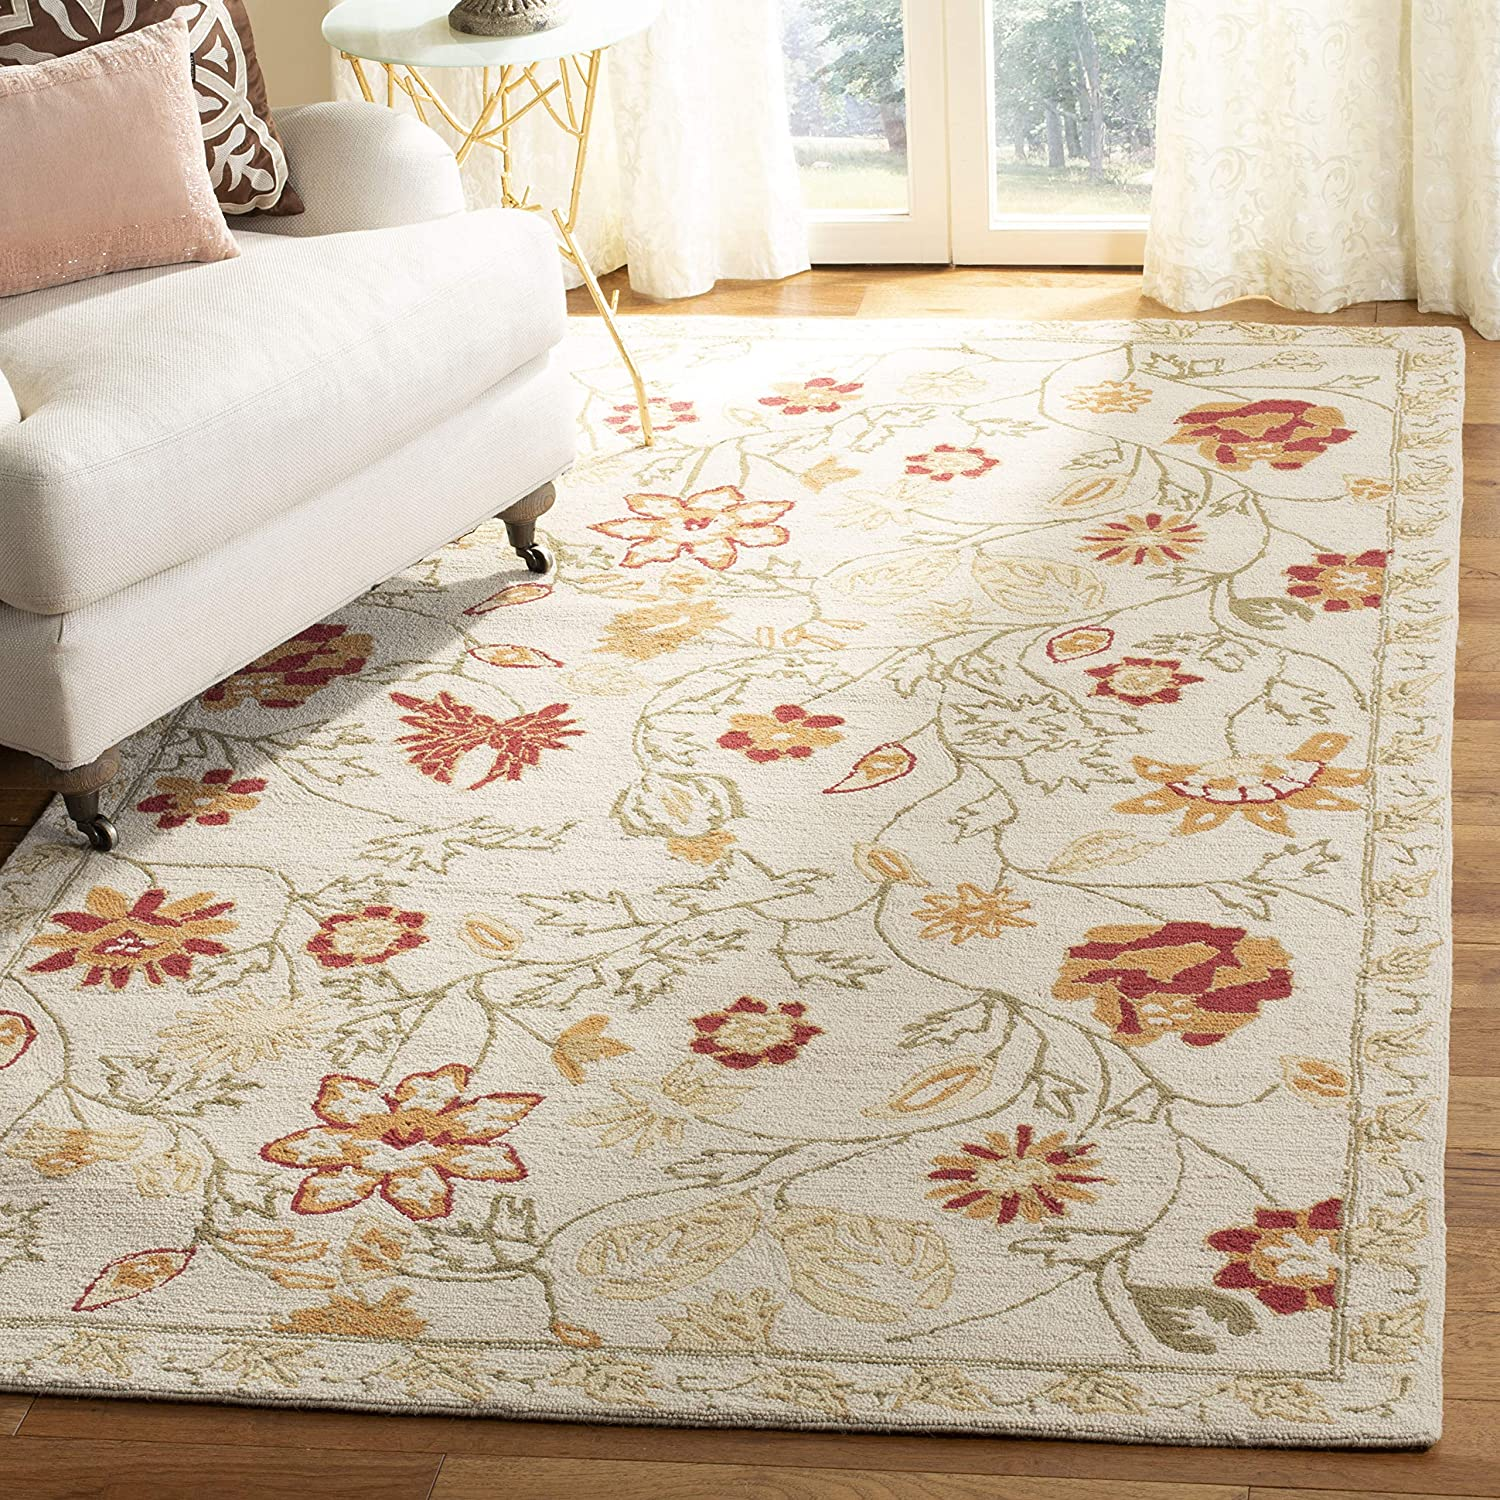 Safavieh Chelsea Collection HK716A Hand-Hooked Ivory and Green Premium Wool Area Rug (3'9